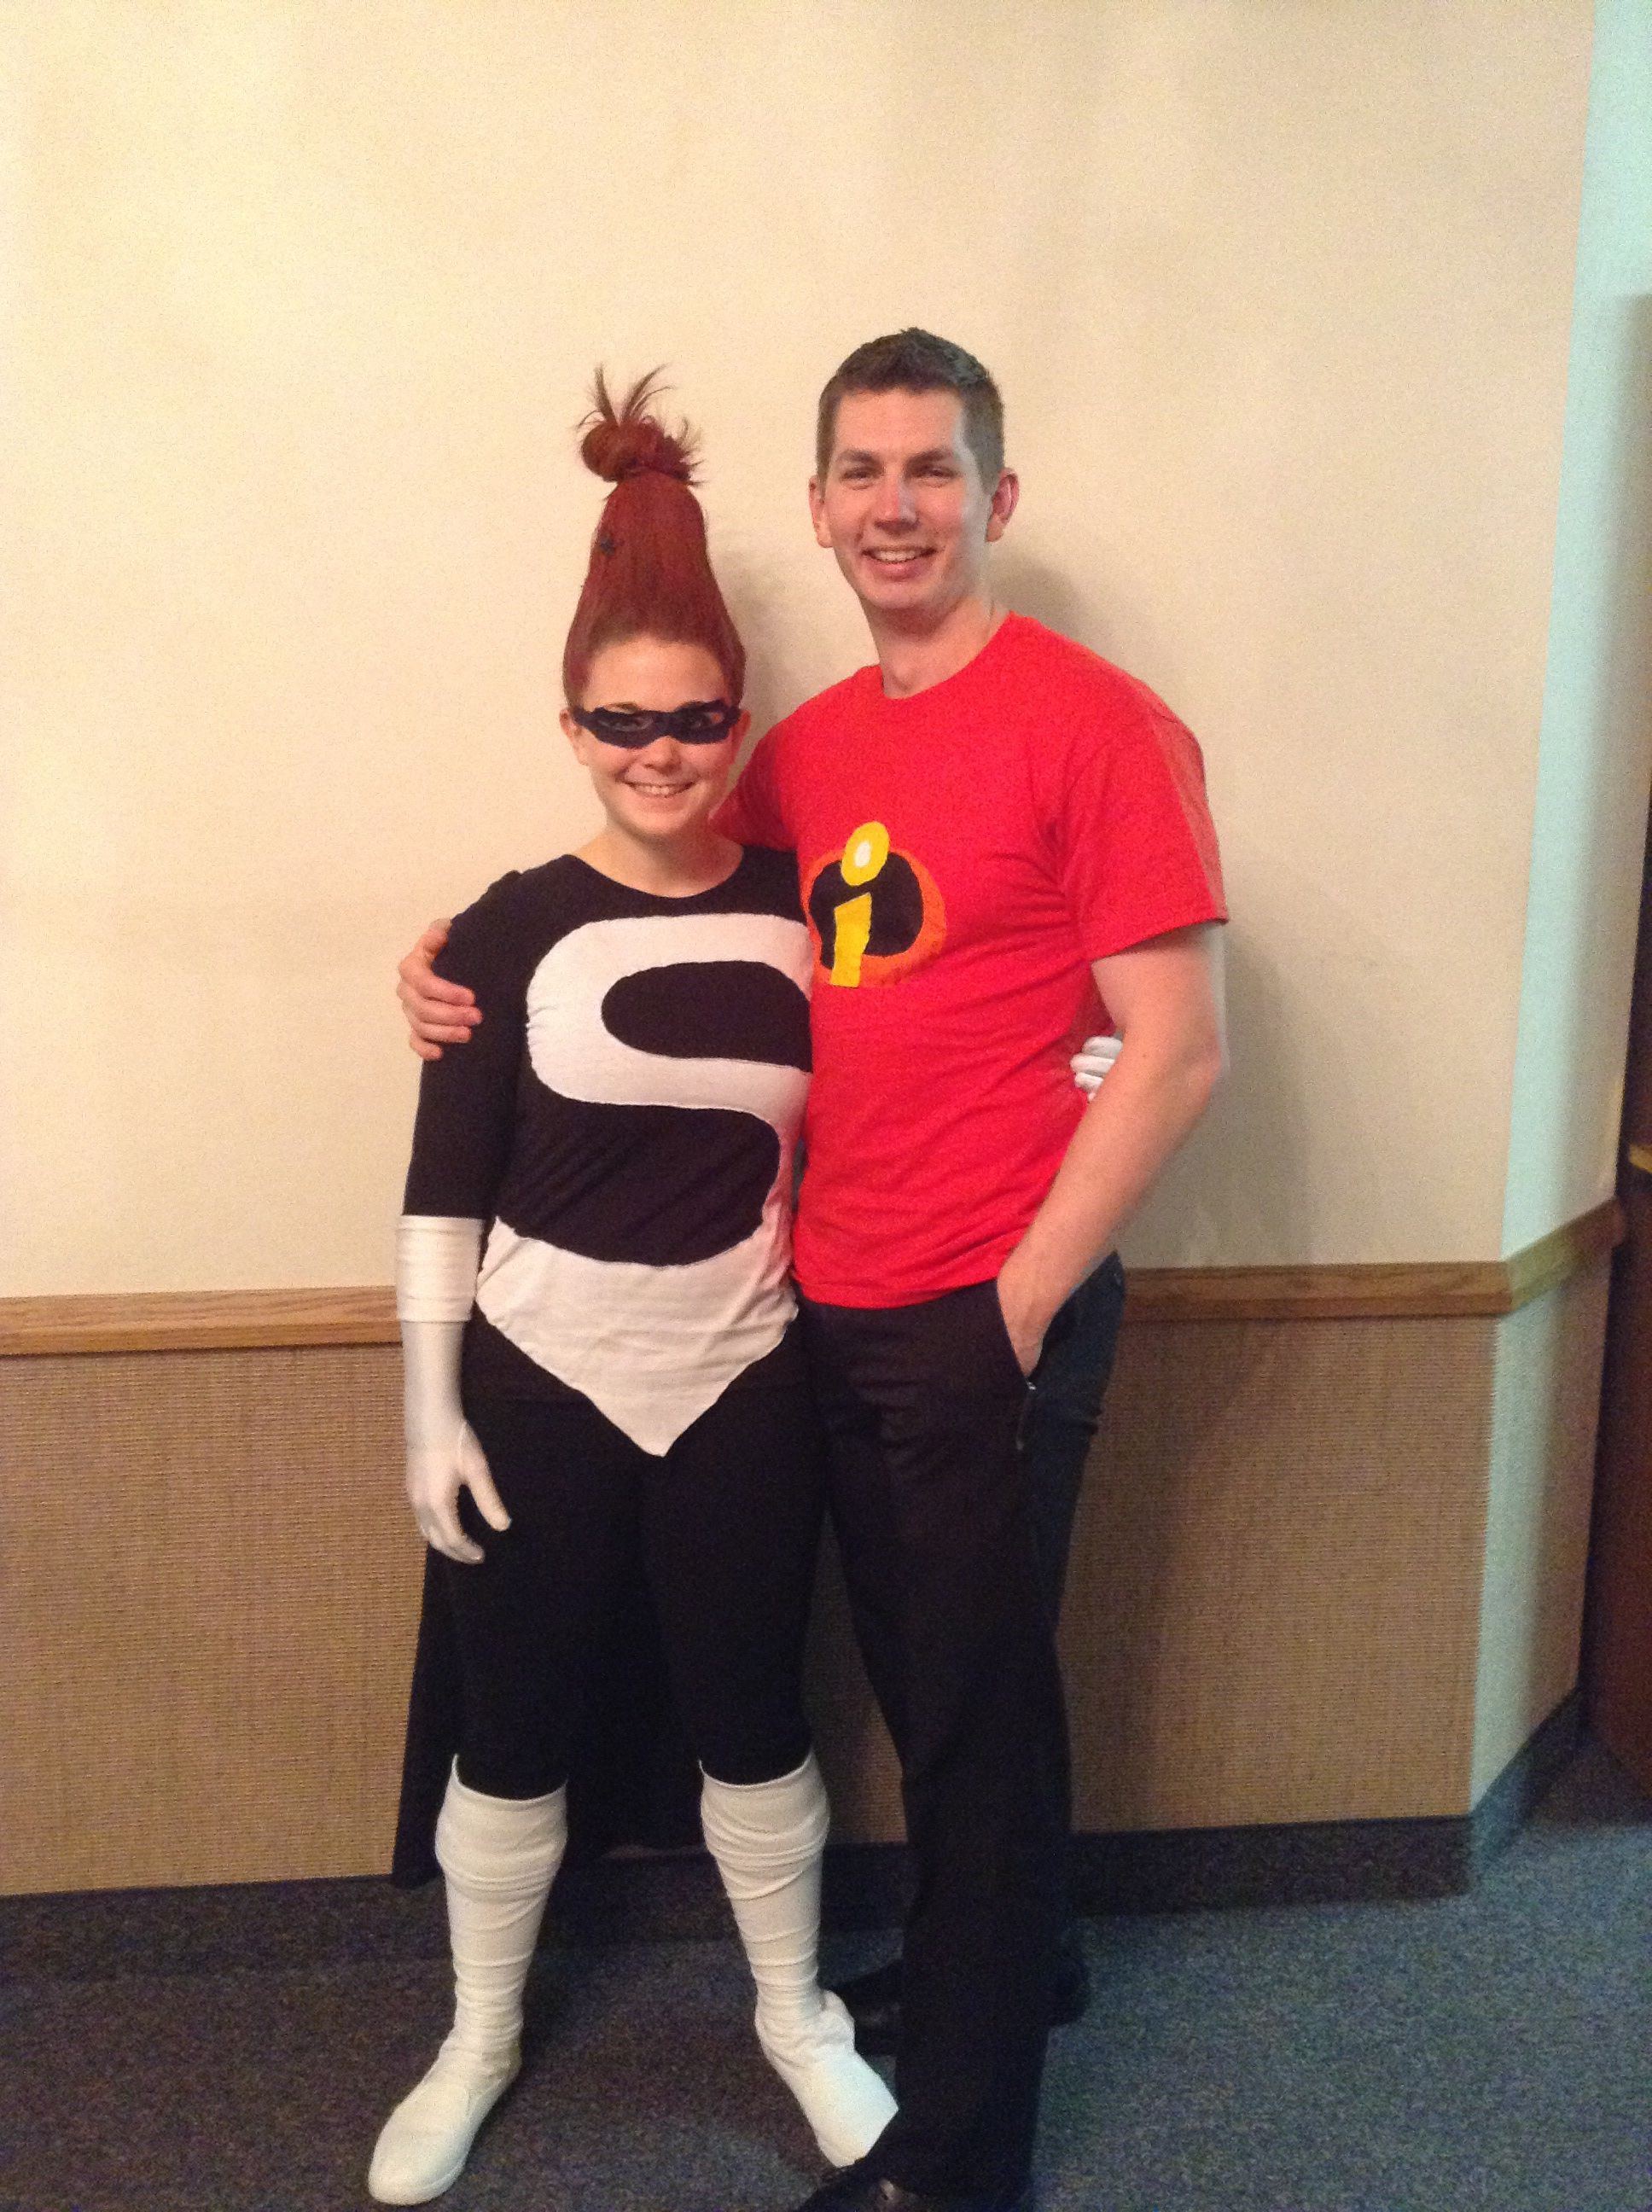 Syndrome and Mr. Incredible Halloween costume! Made these costumes by hand. Used a white t-shirt and cut out the S, then hand stitched it onto the black long sleeved shirt. Sewed a cape to the shoulders of the shirt, and then made and hand-stitched the incredibles emblem on my husband's shirt :) fun stuff! Put a water bottle on my head and wrapped my hair around it to get it to stand up straight. Then used lots of hair spray!